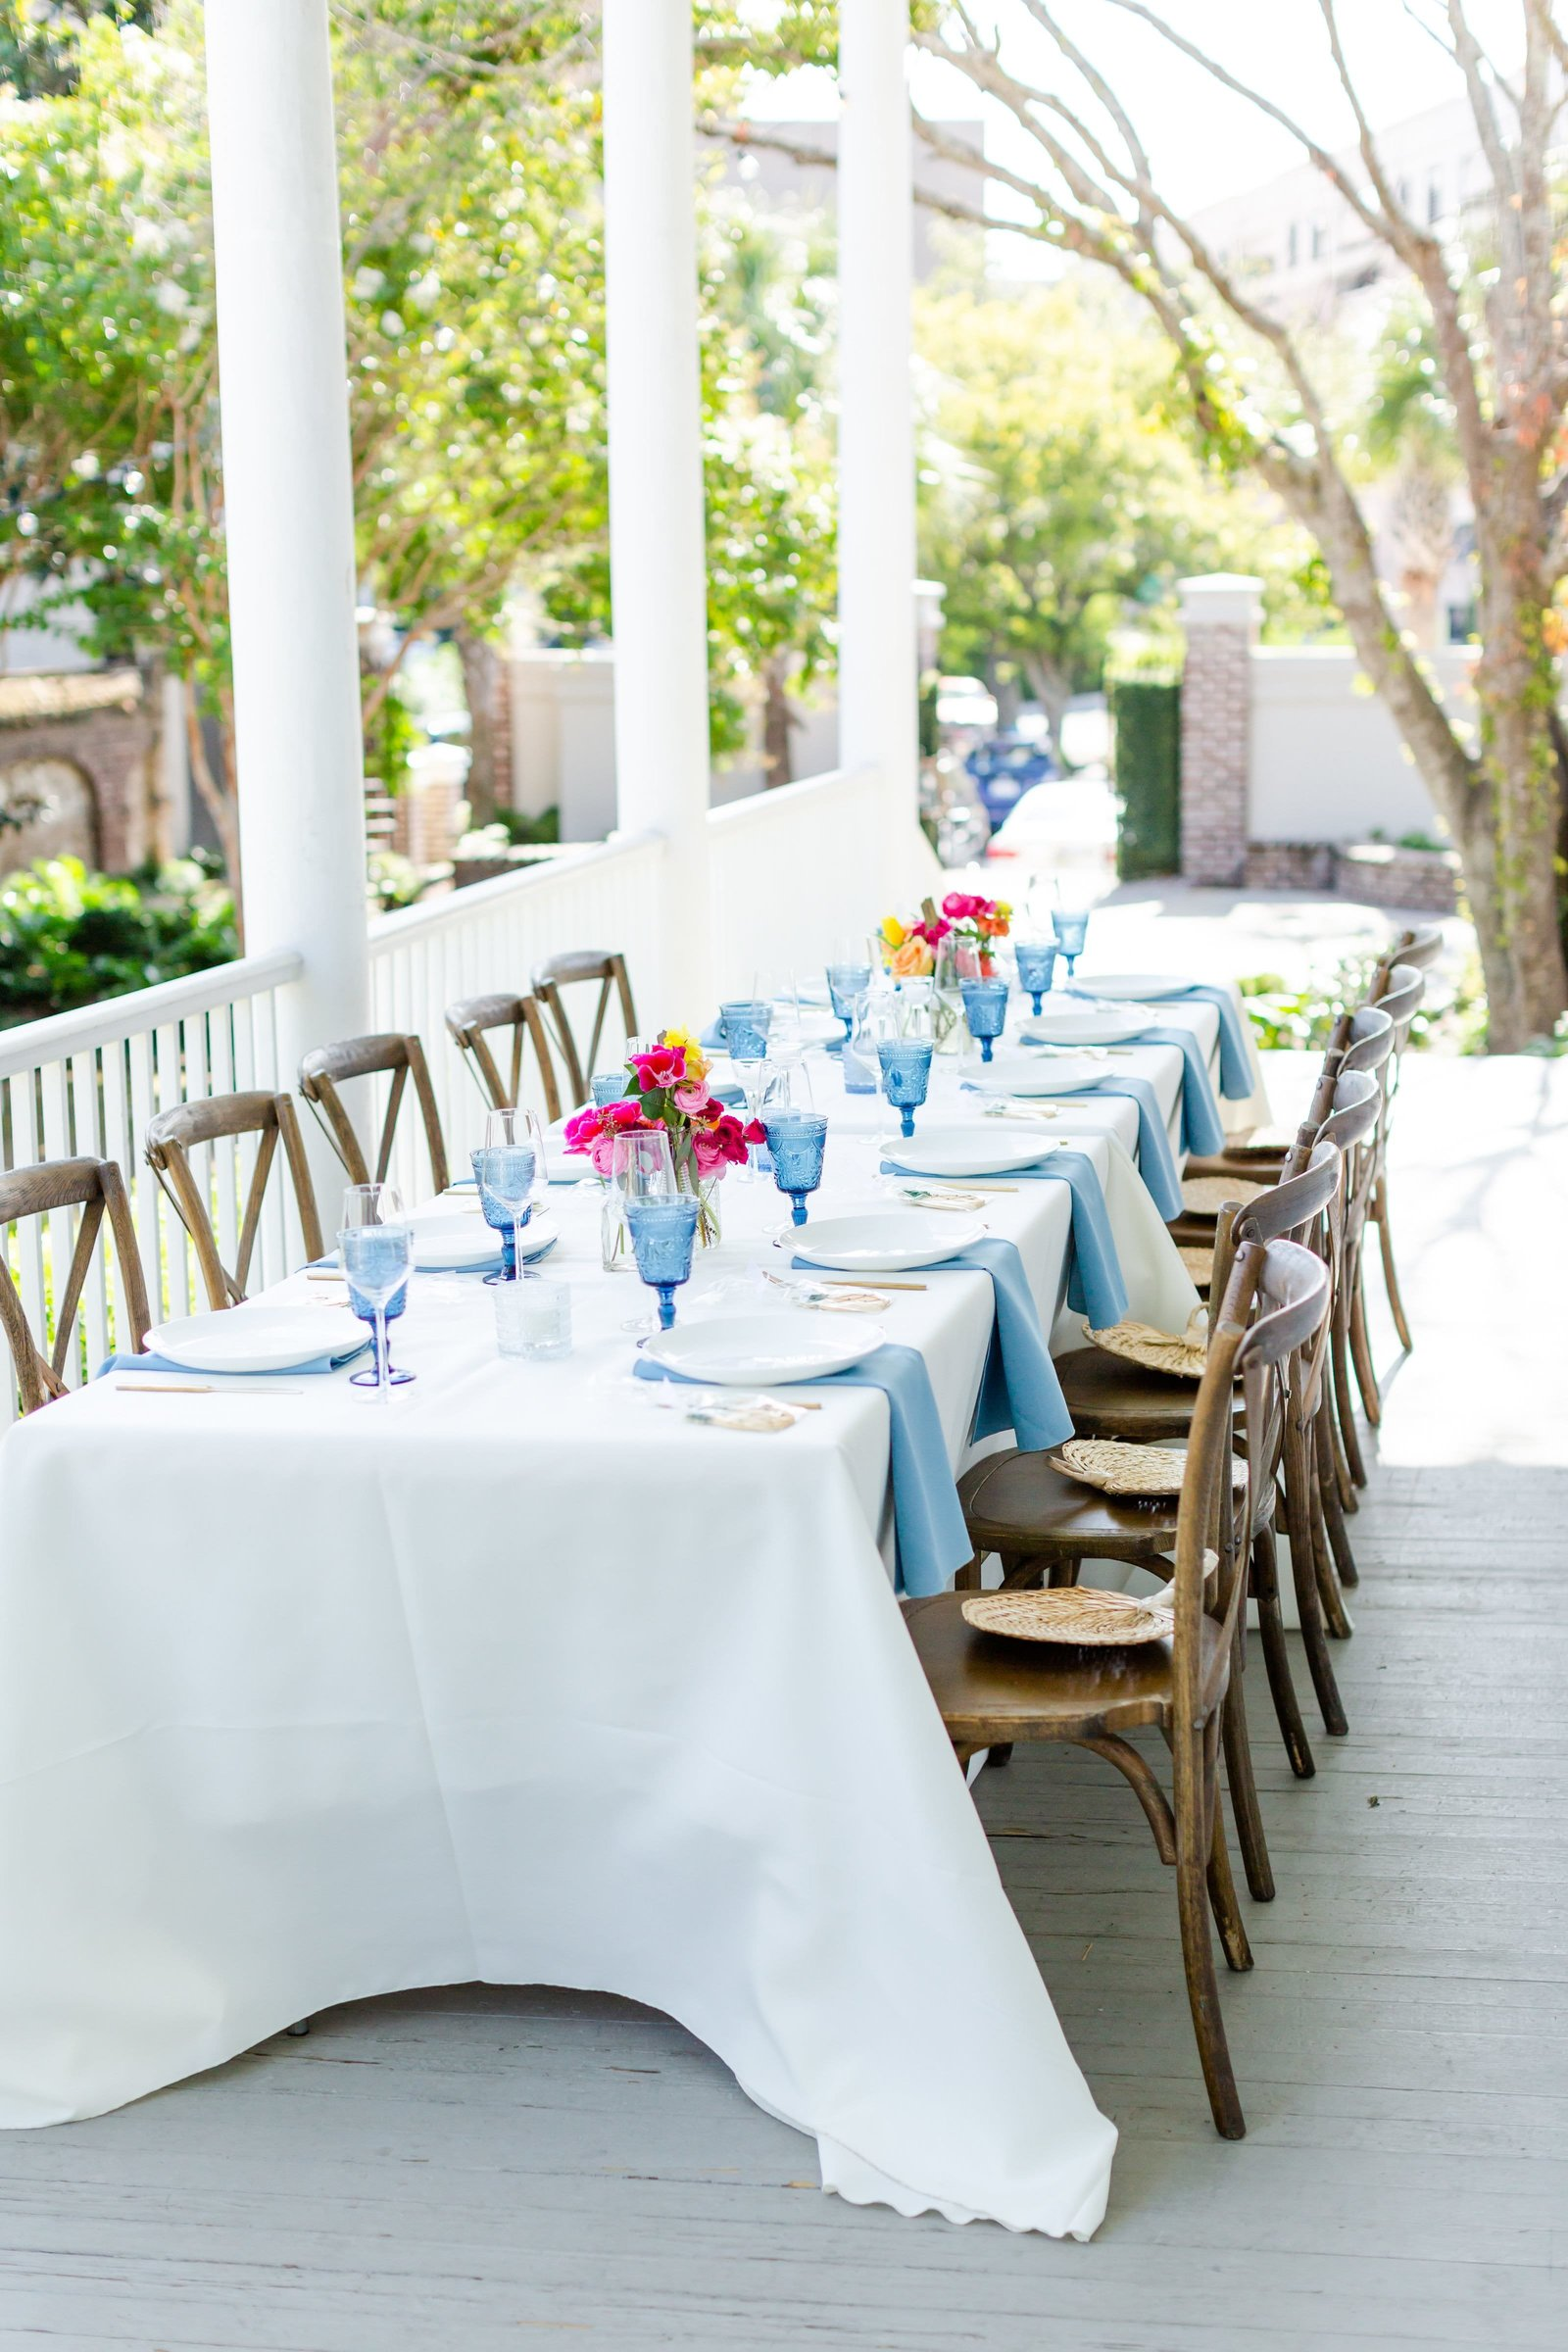 Colorful-spring-gadsden-house-wedding-by-charleston-wedding-photographer-13